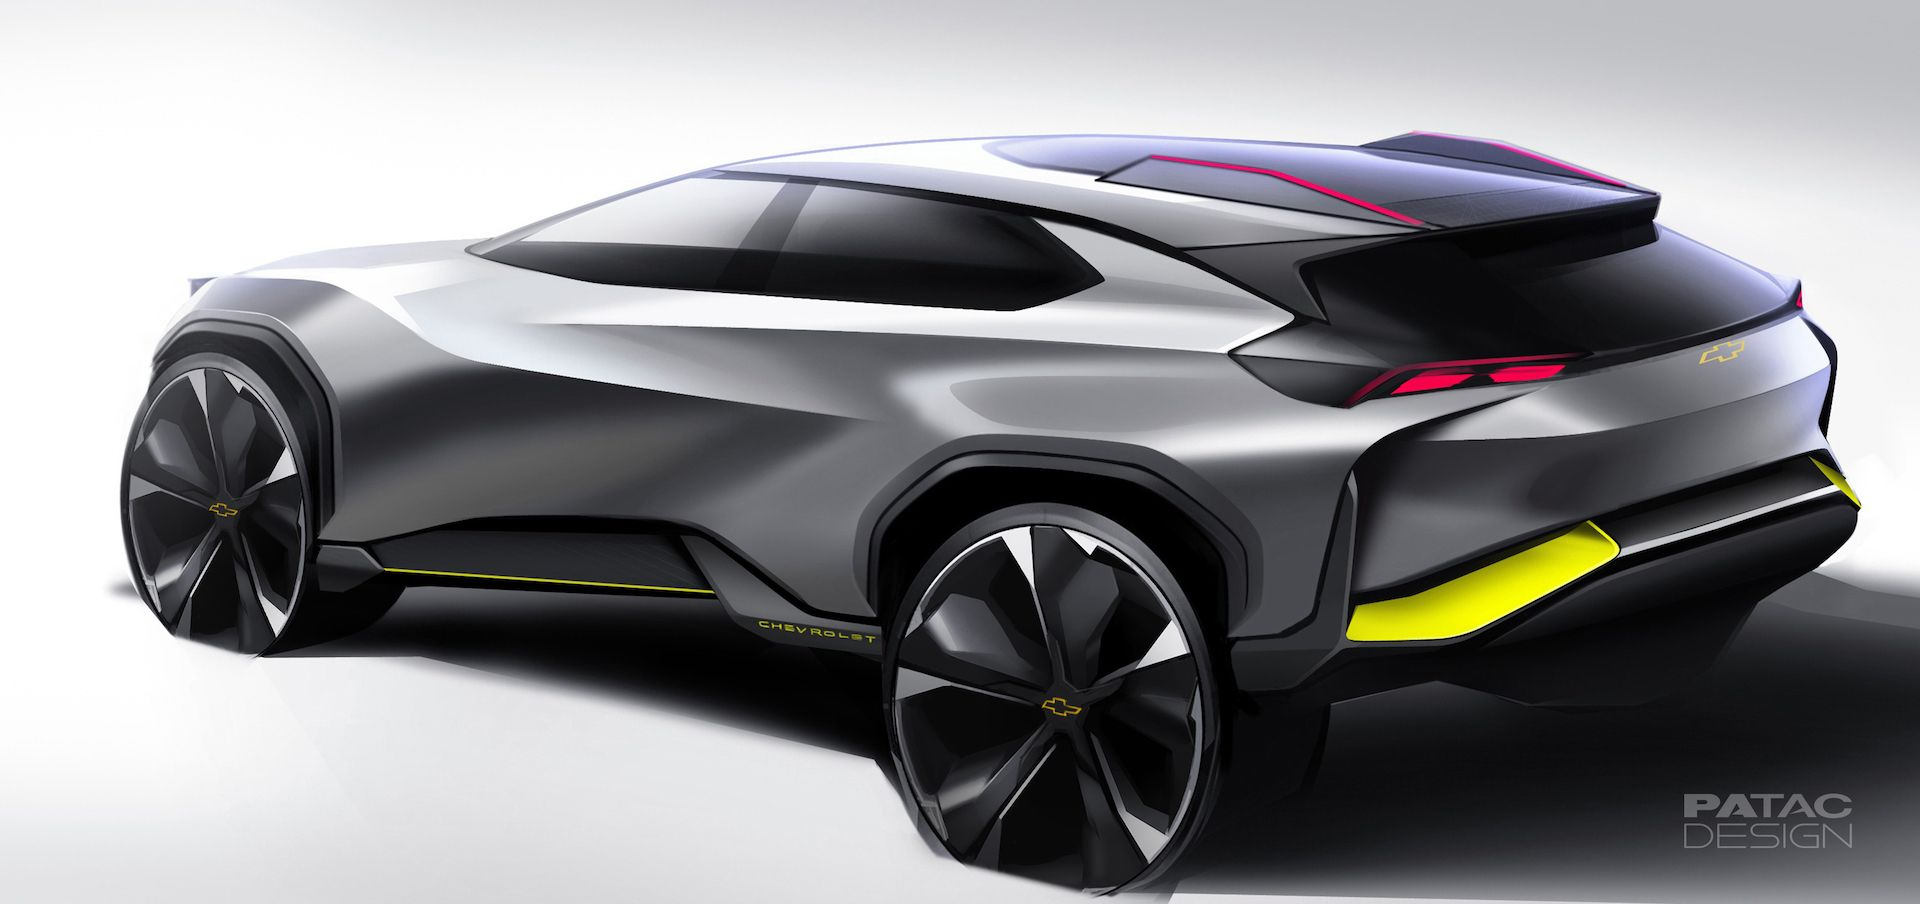 How Patac Created The Chevrolet Fnr X Car Design News Car